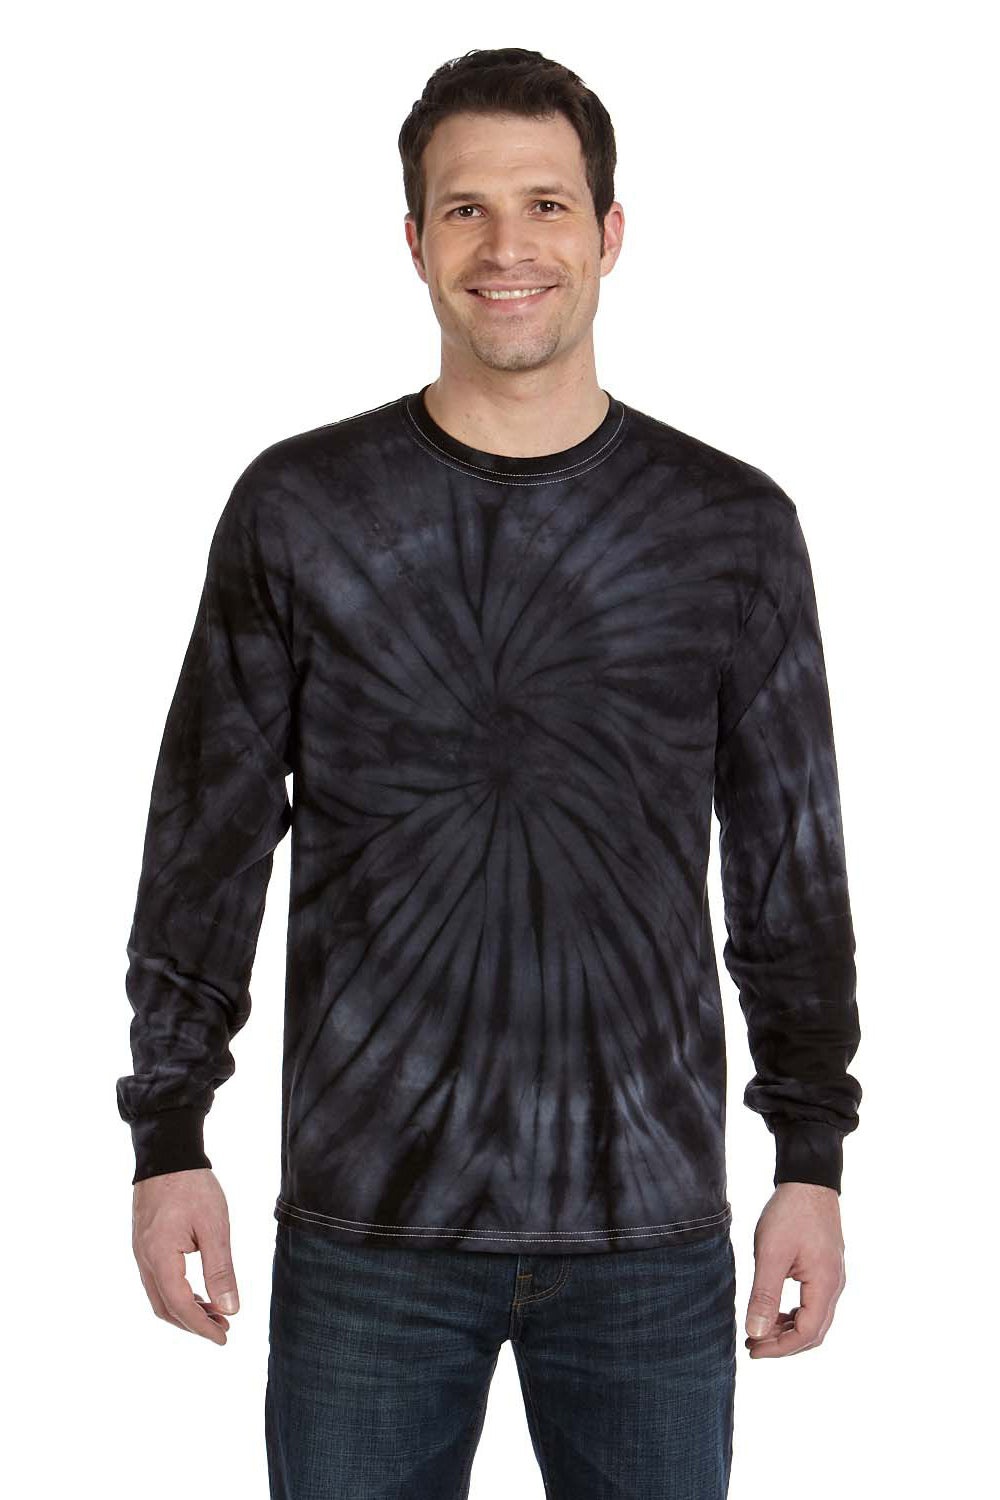 Tie-Dye CD2000 Mens Long Sleeve Crewneck T-Shirt Black Front